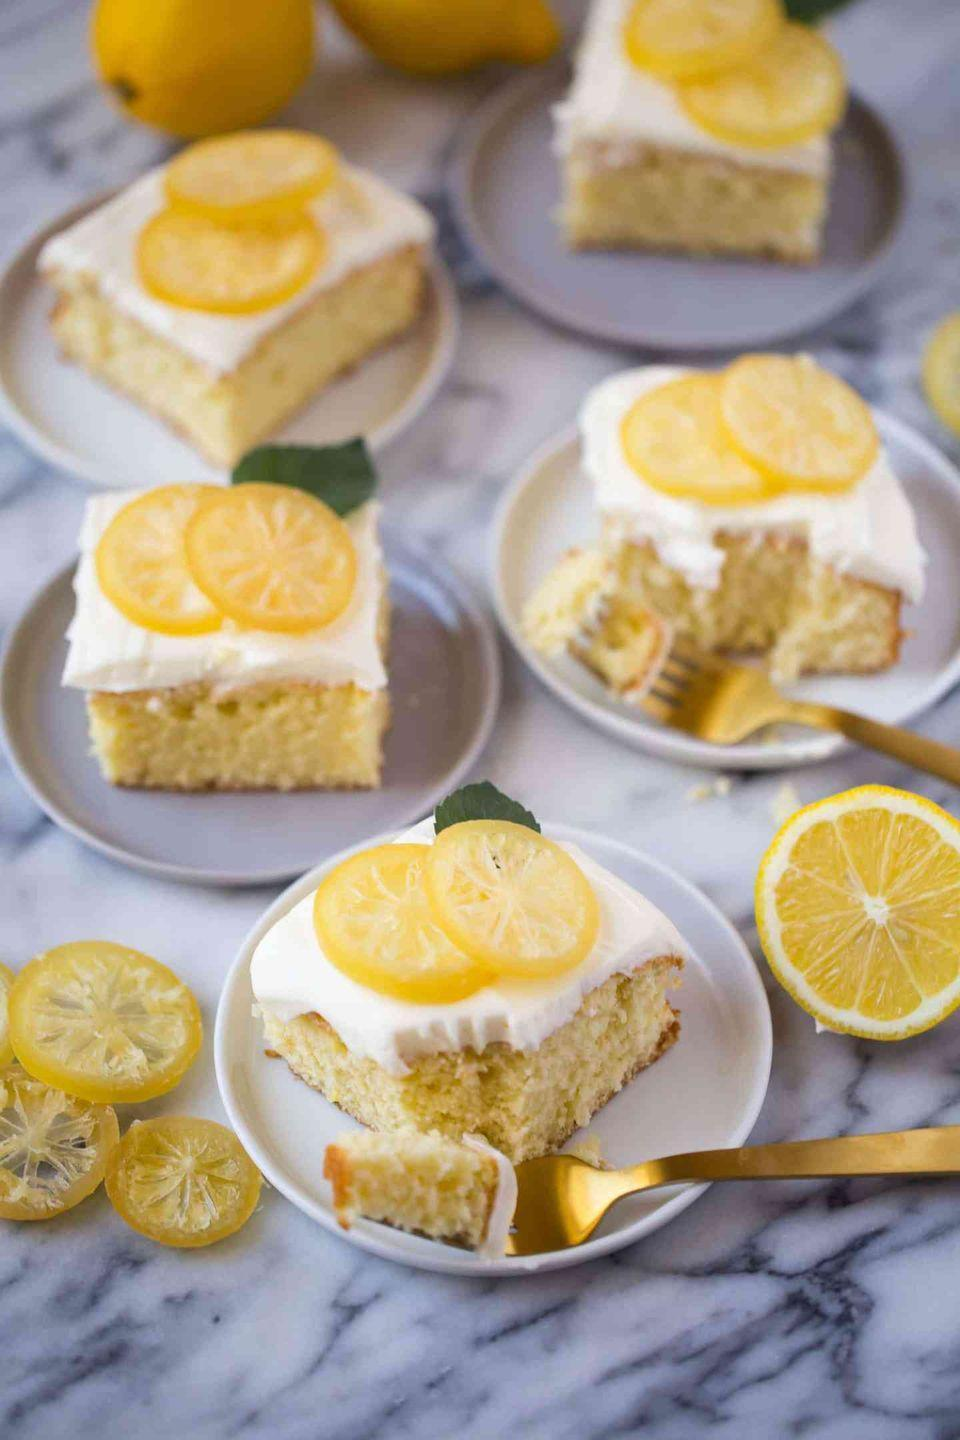 "<p>Clearly you can't have enough lemon on Easter! This sheet cake features a citrus tang in both the cake and rich frosting.</p><p><strong>Get the recipe at <a href=""https://www.butterbeready.com/lemon-sheet-cake-with-lemon-cream-cheese-frosting/"" rel=""nofollow noopener"" target=""_blank"" data-ylk=""slk:Butter Be Ready"" class=""link rapid-noclick-resp"">Butter Be Ready</a>.</strong></p><p><strong><a class=""link rapid-noclick-resp"" href=""https://go.redirectingat.com?id=74968X1596630&url=https%3A%2F%2Fwww.walmart.com%2Fsearch%2F%3Fquery%3Djelly%2Broll%2Bpan&sref=https%3A%2F%2Fwww.thepioneerwoman.com%2Ffood-cooking%2Fmeals-menus%2Fg35408493%2Feaster-desserts%2F"" rel=""nofollow noopener"" target=""_blank"" data-ylk=""slk:SHOP JELLY ROLL PANS"">SHOP JELLY ROLL PANS</a><br></strong></p>"